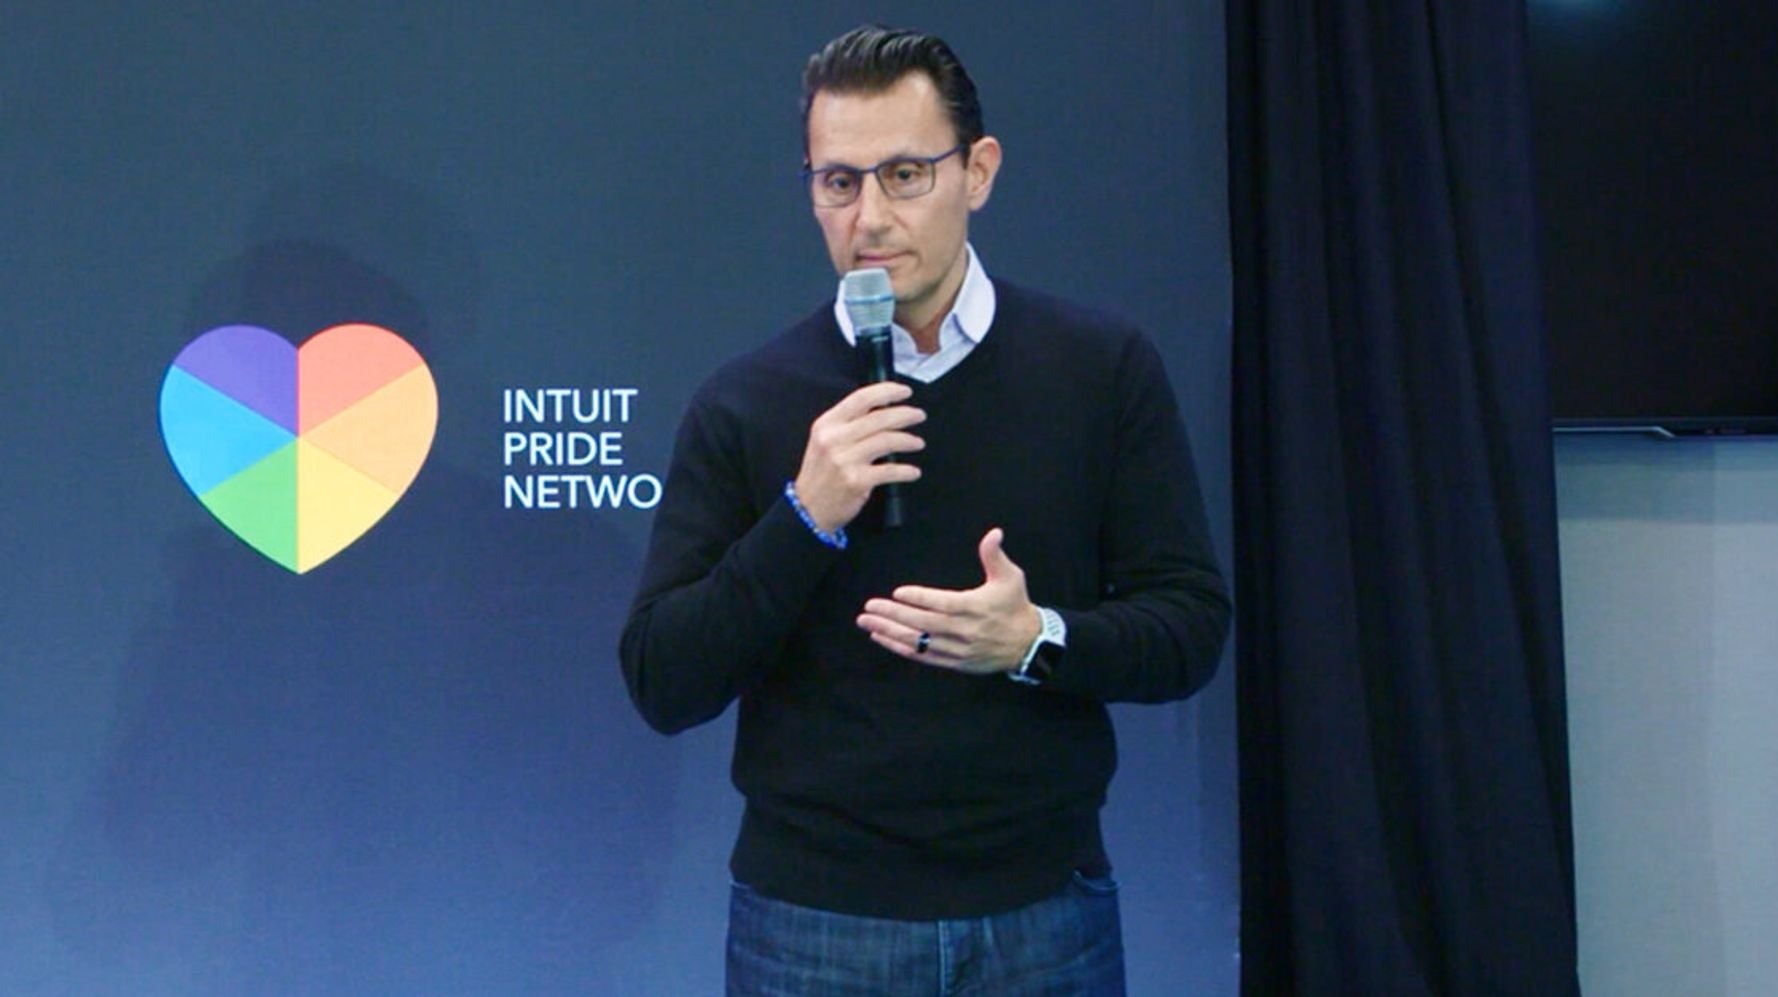 Intuit staff give talk on stage